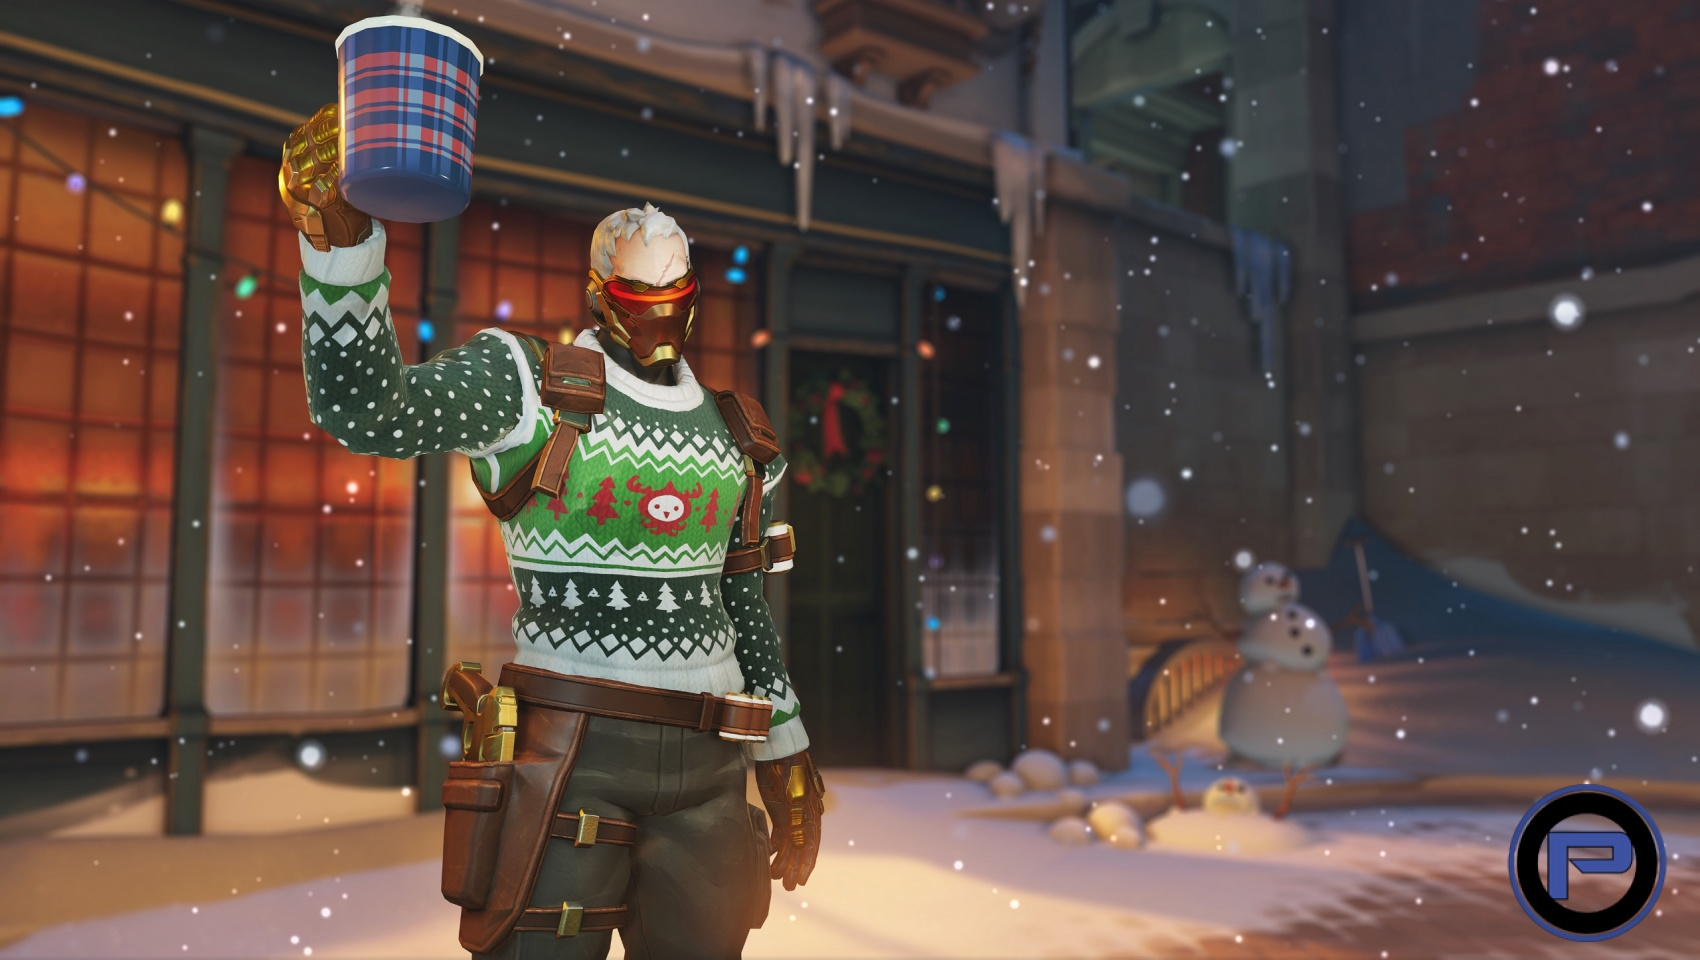 Overwatch Winter Wonderland 2020.Overwatch Winter Wonderland Returns With Snowball